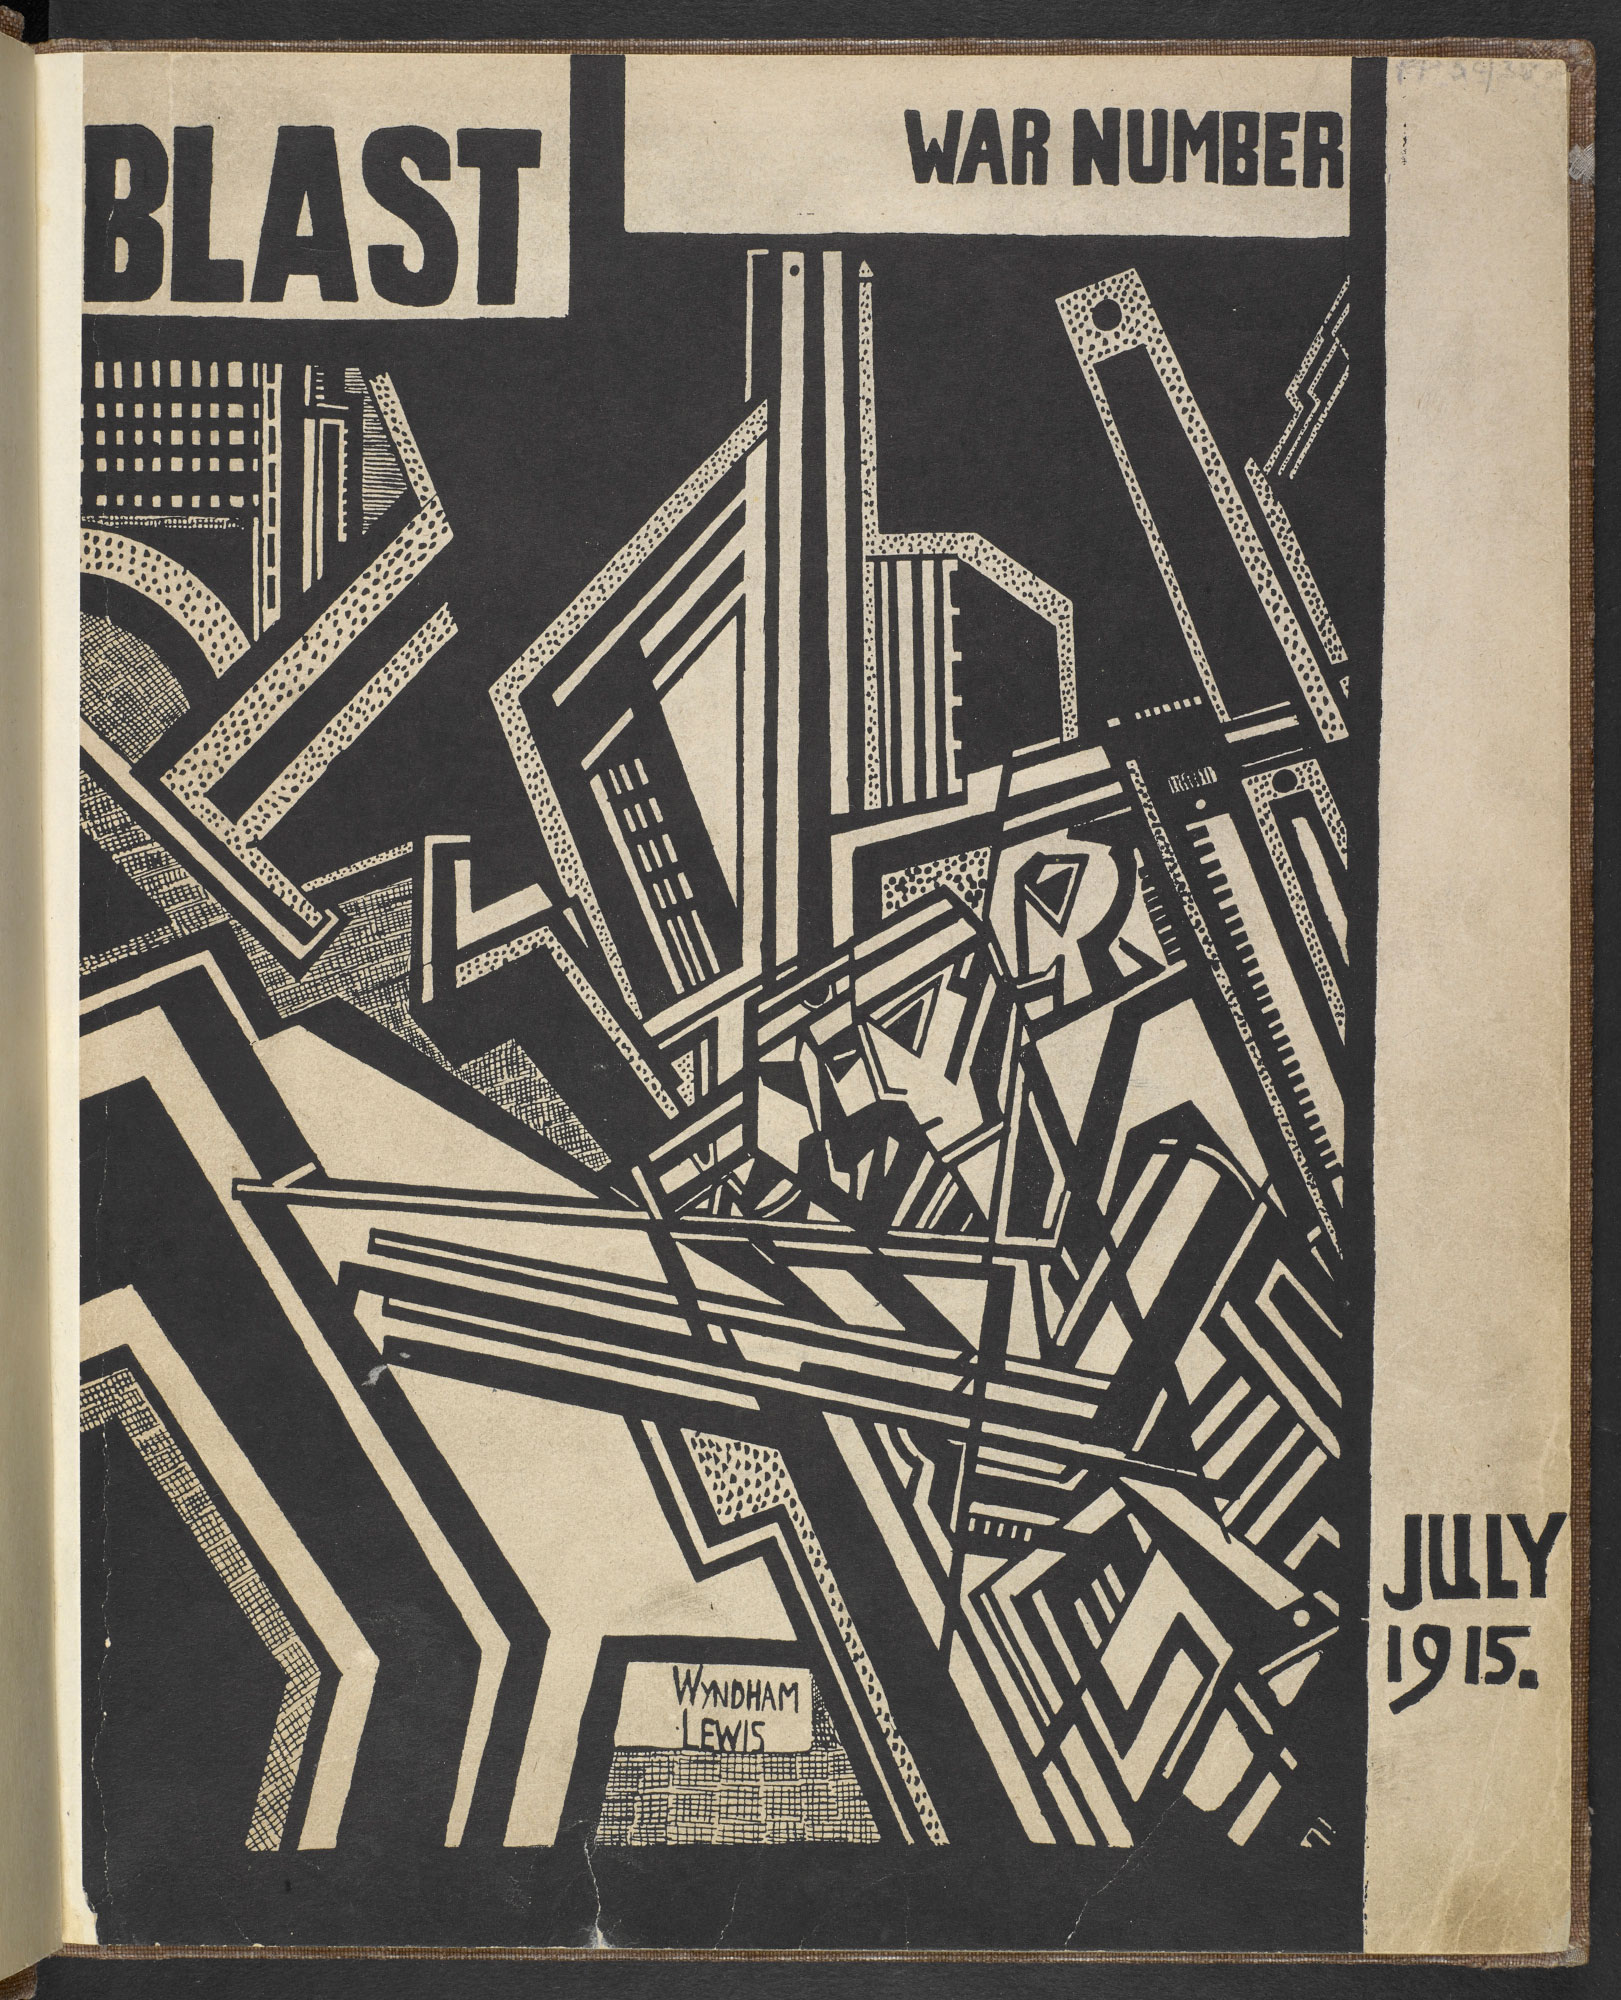 BLAST no. 2, the Vorticist magazine